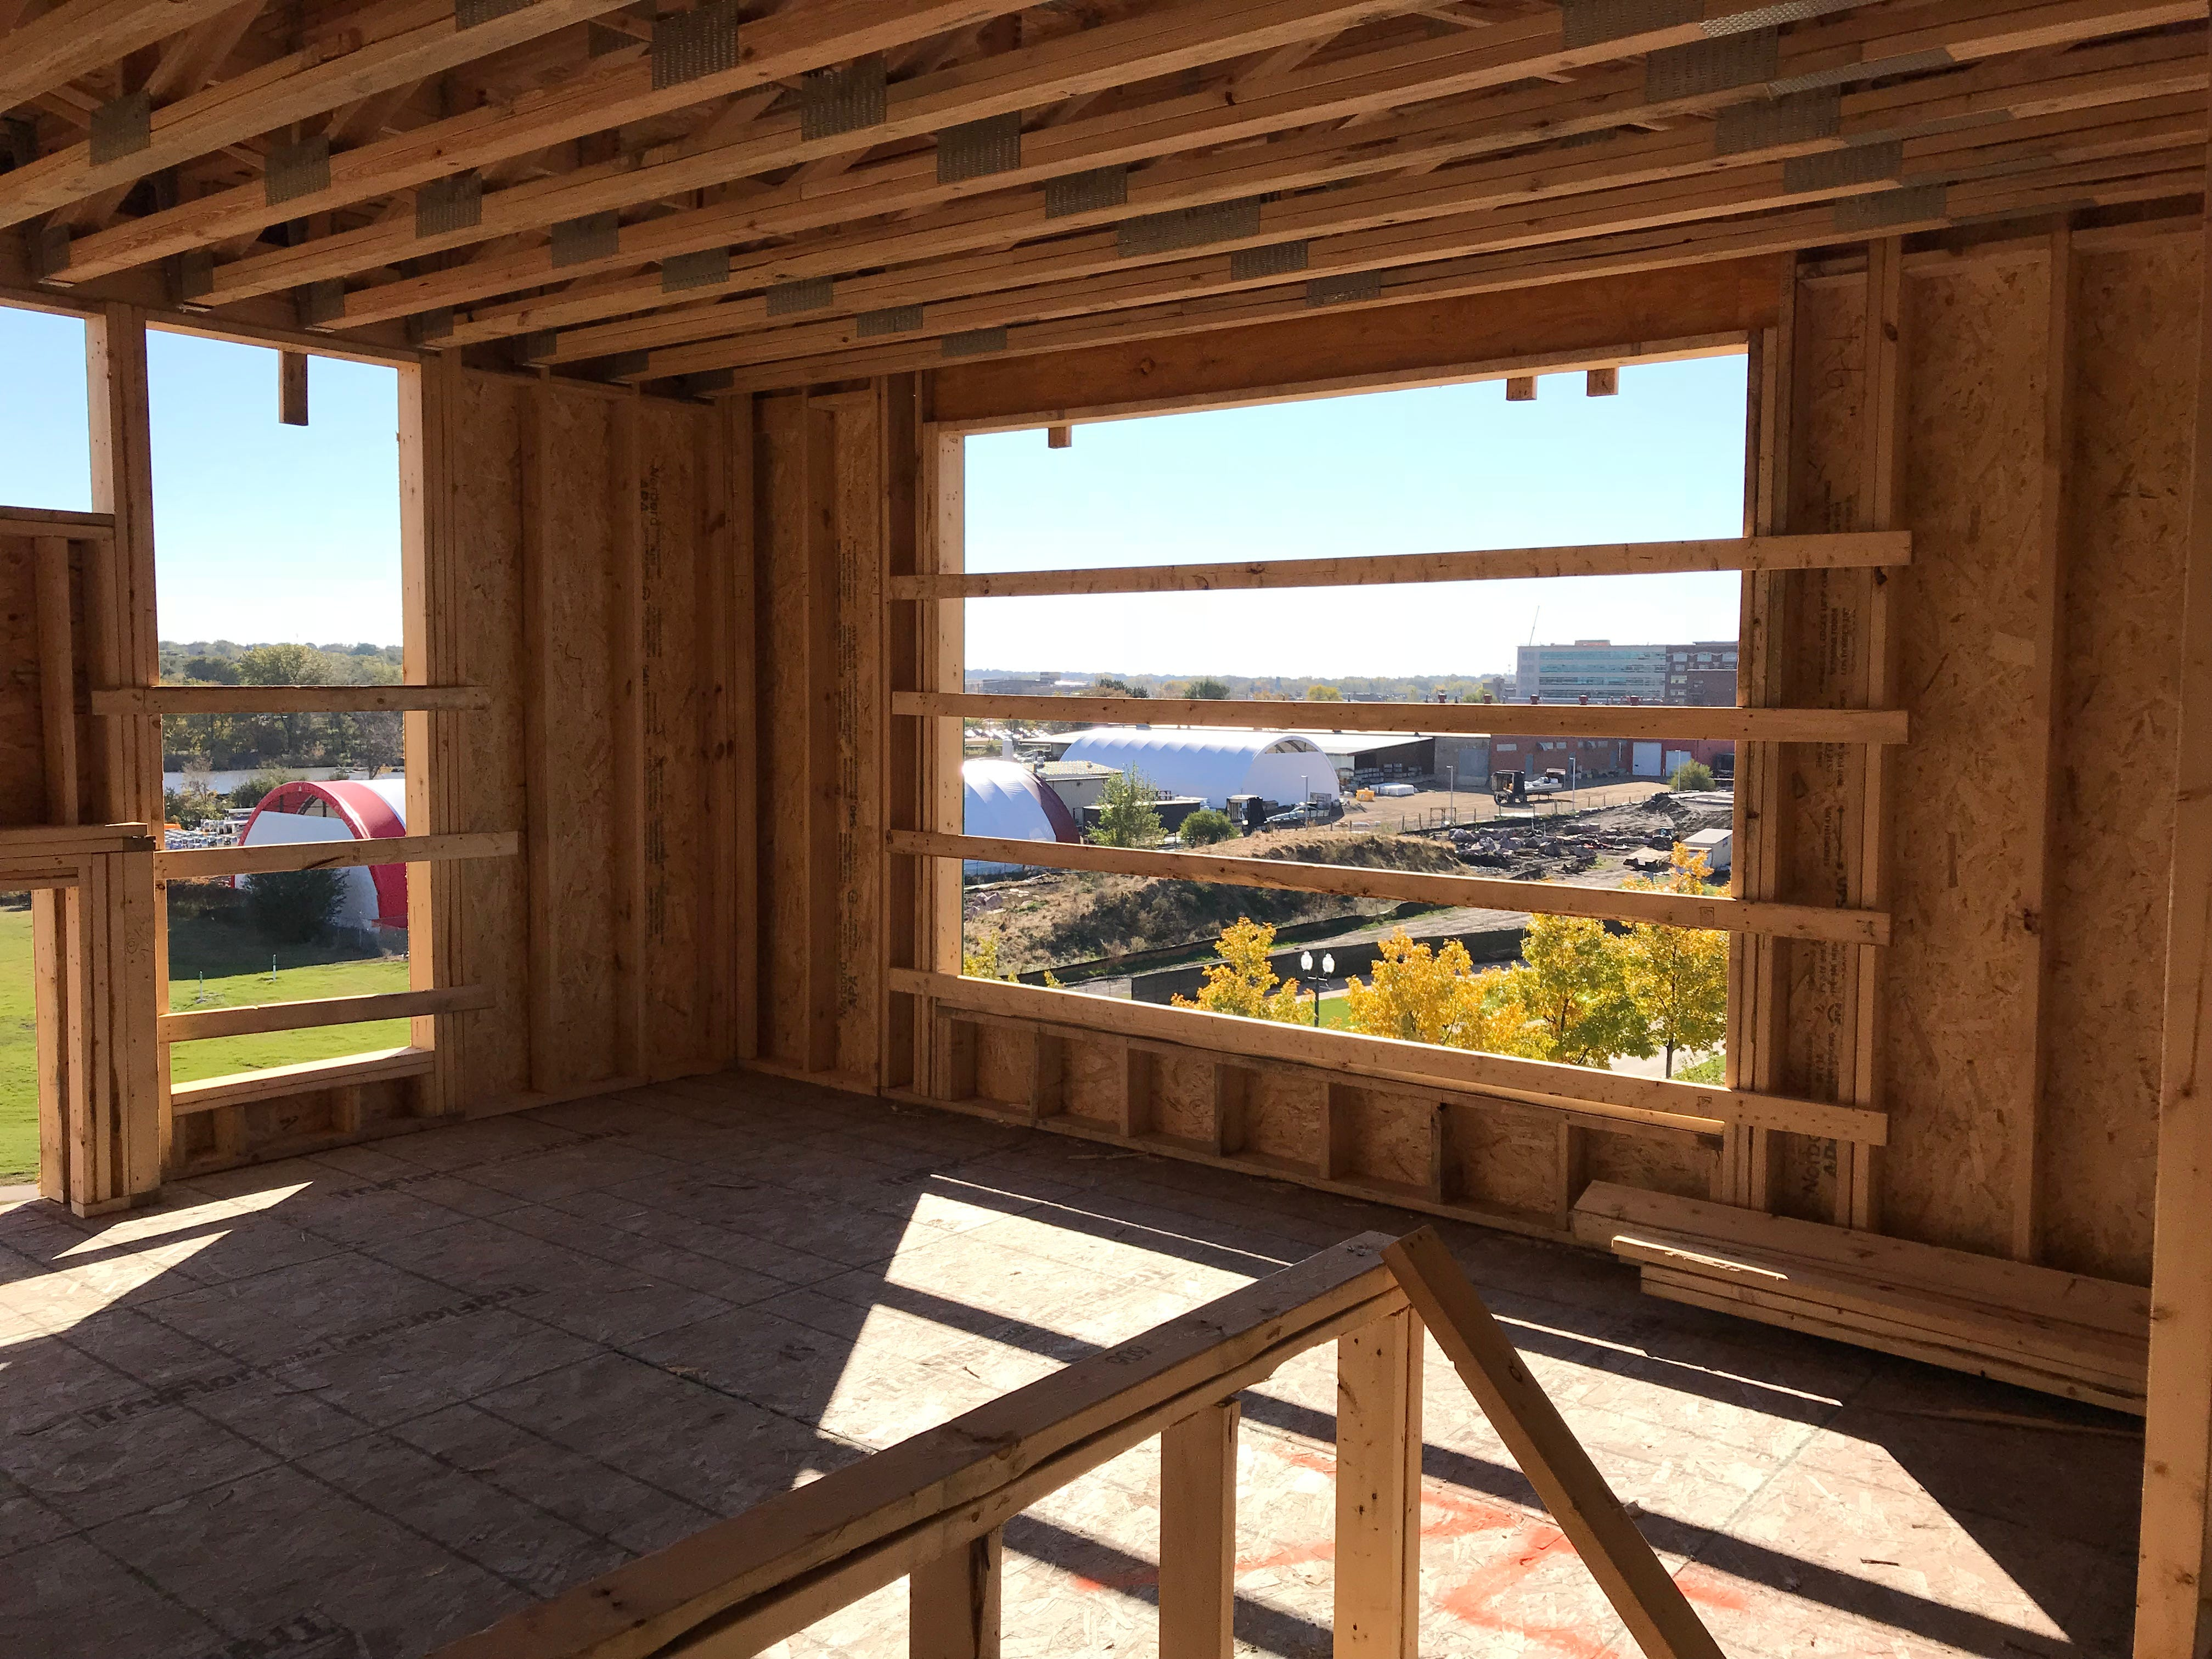 Inside an under-construction southeast corner apartment in The Cascade at the Falls building in uptown Sioux Falls.